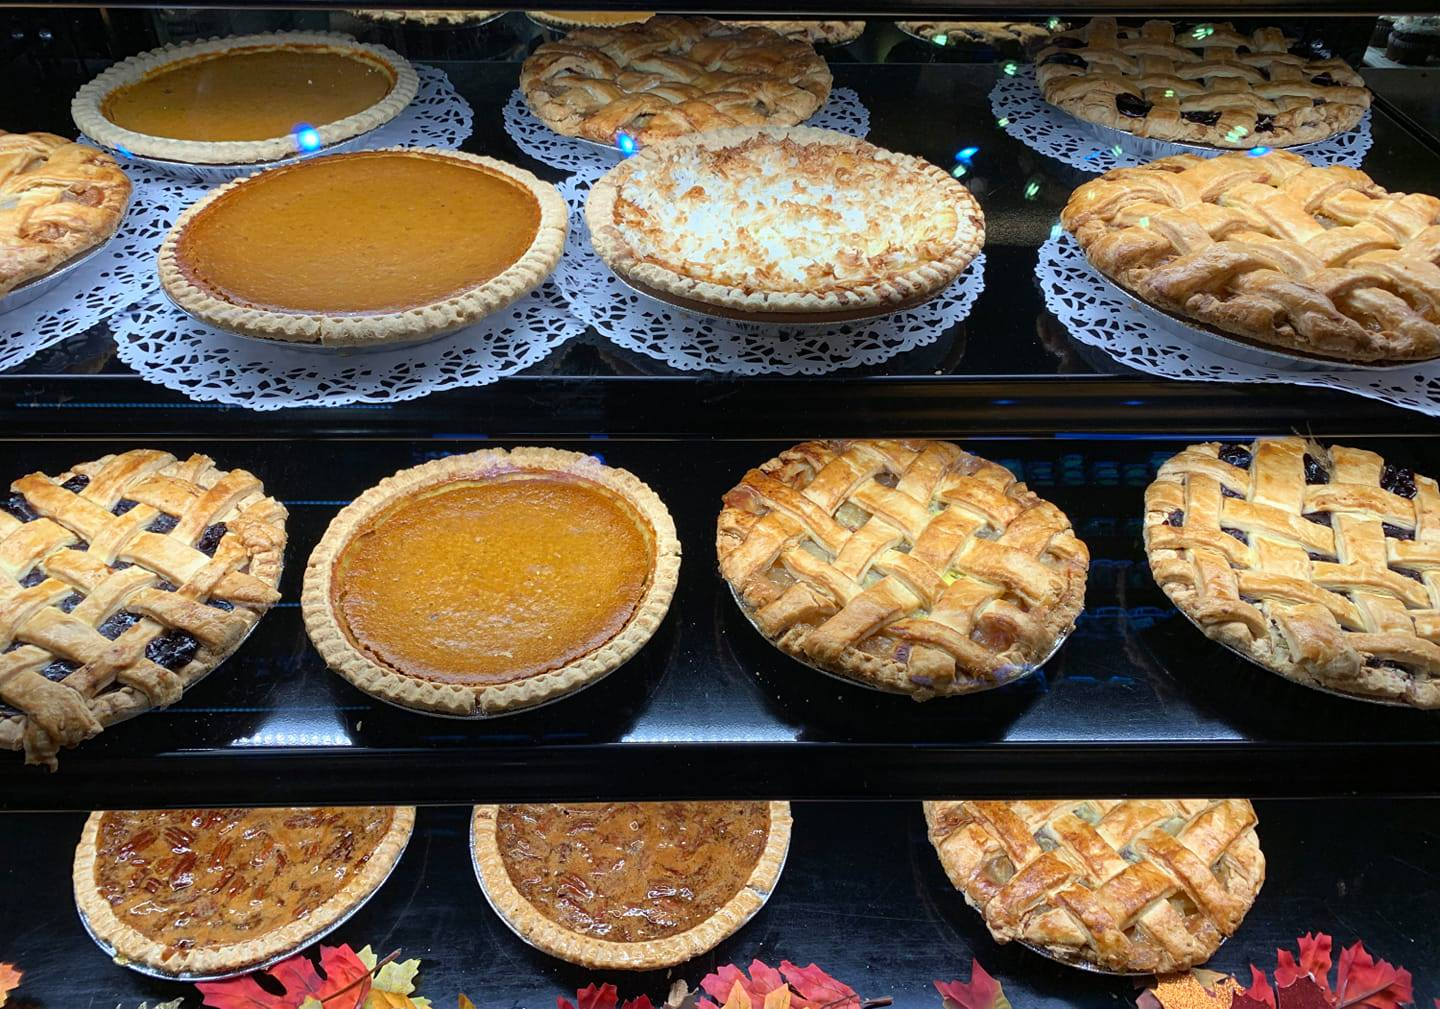 Shelf with variety of pies